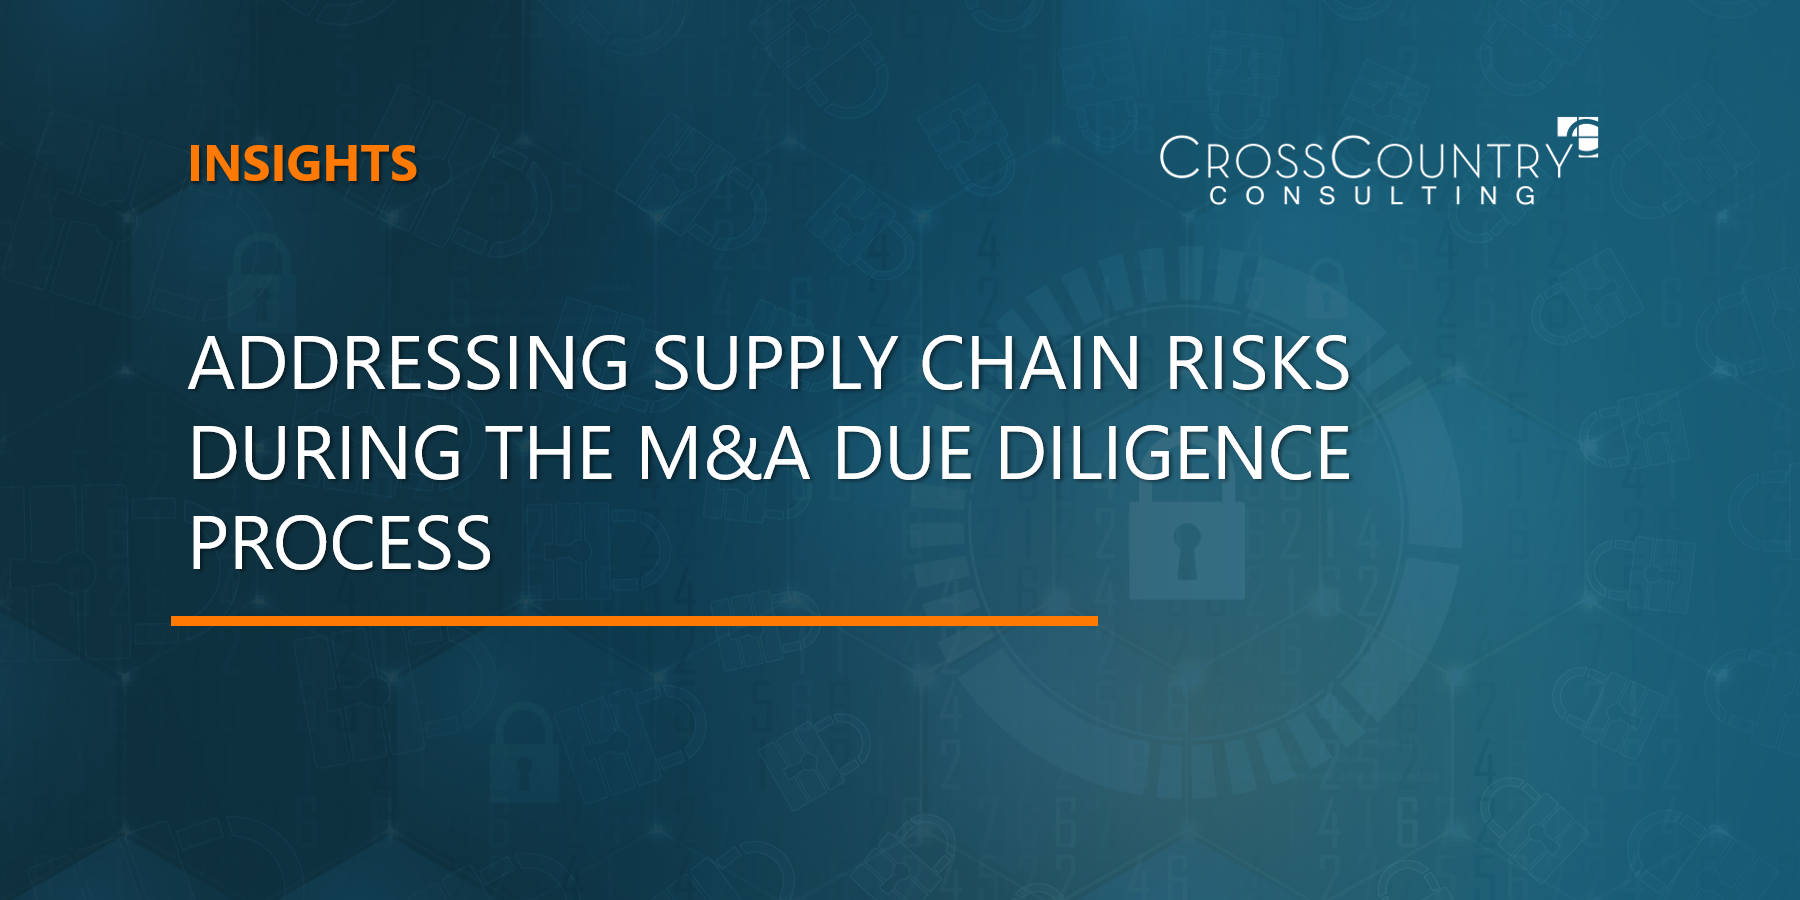 Addressing Supply Chain Risks During the M&A Due Diligence Process